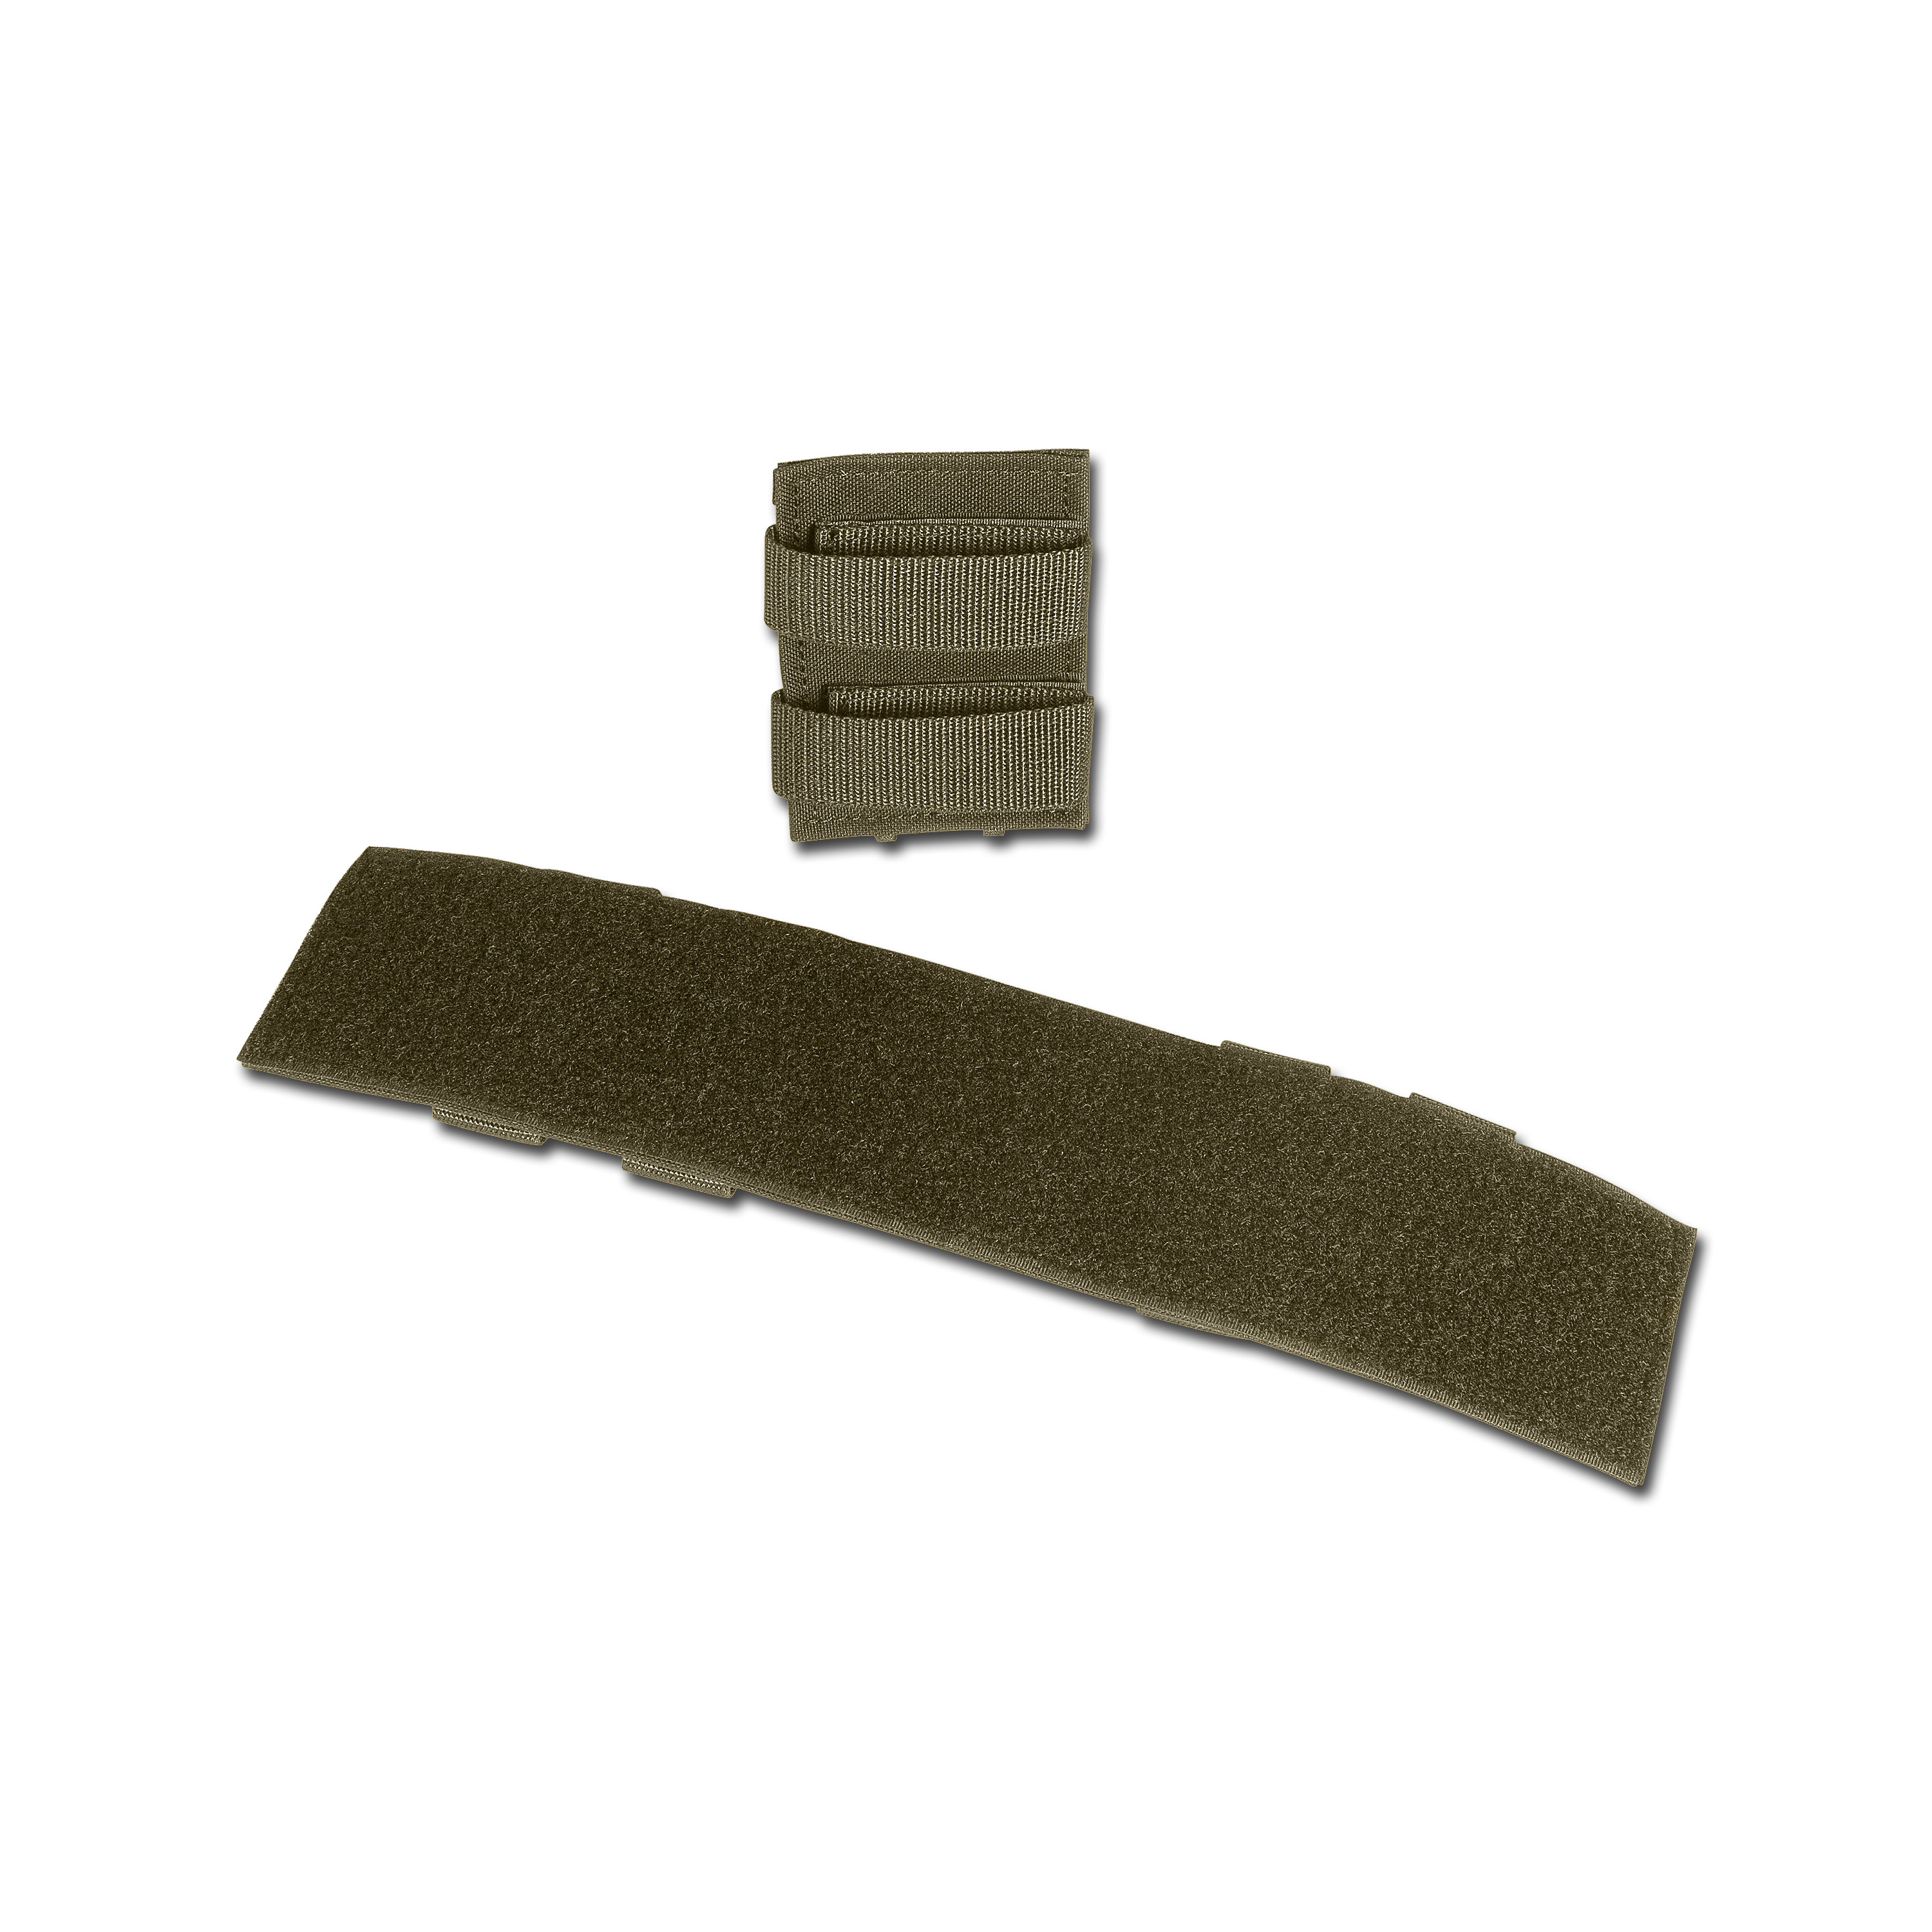 TT Modular Patch Holder olive